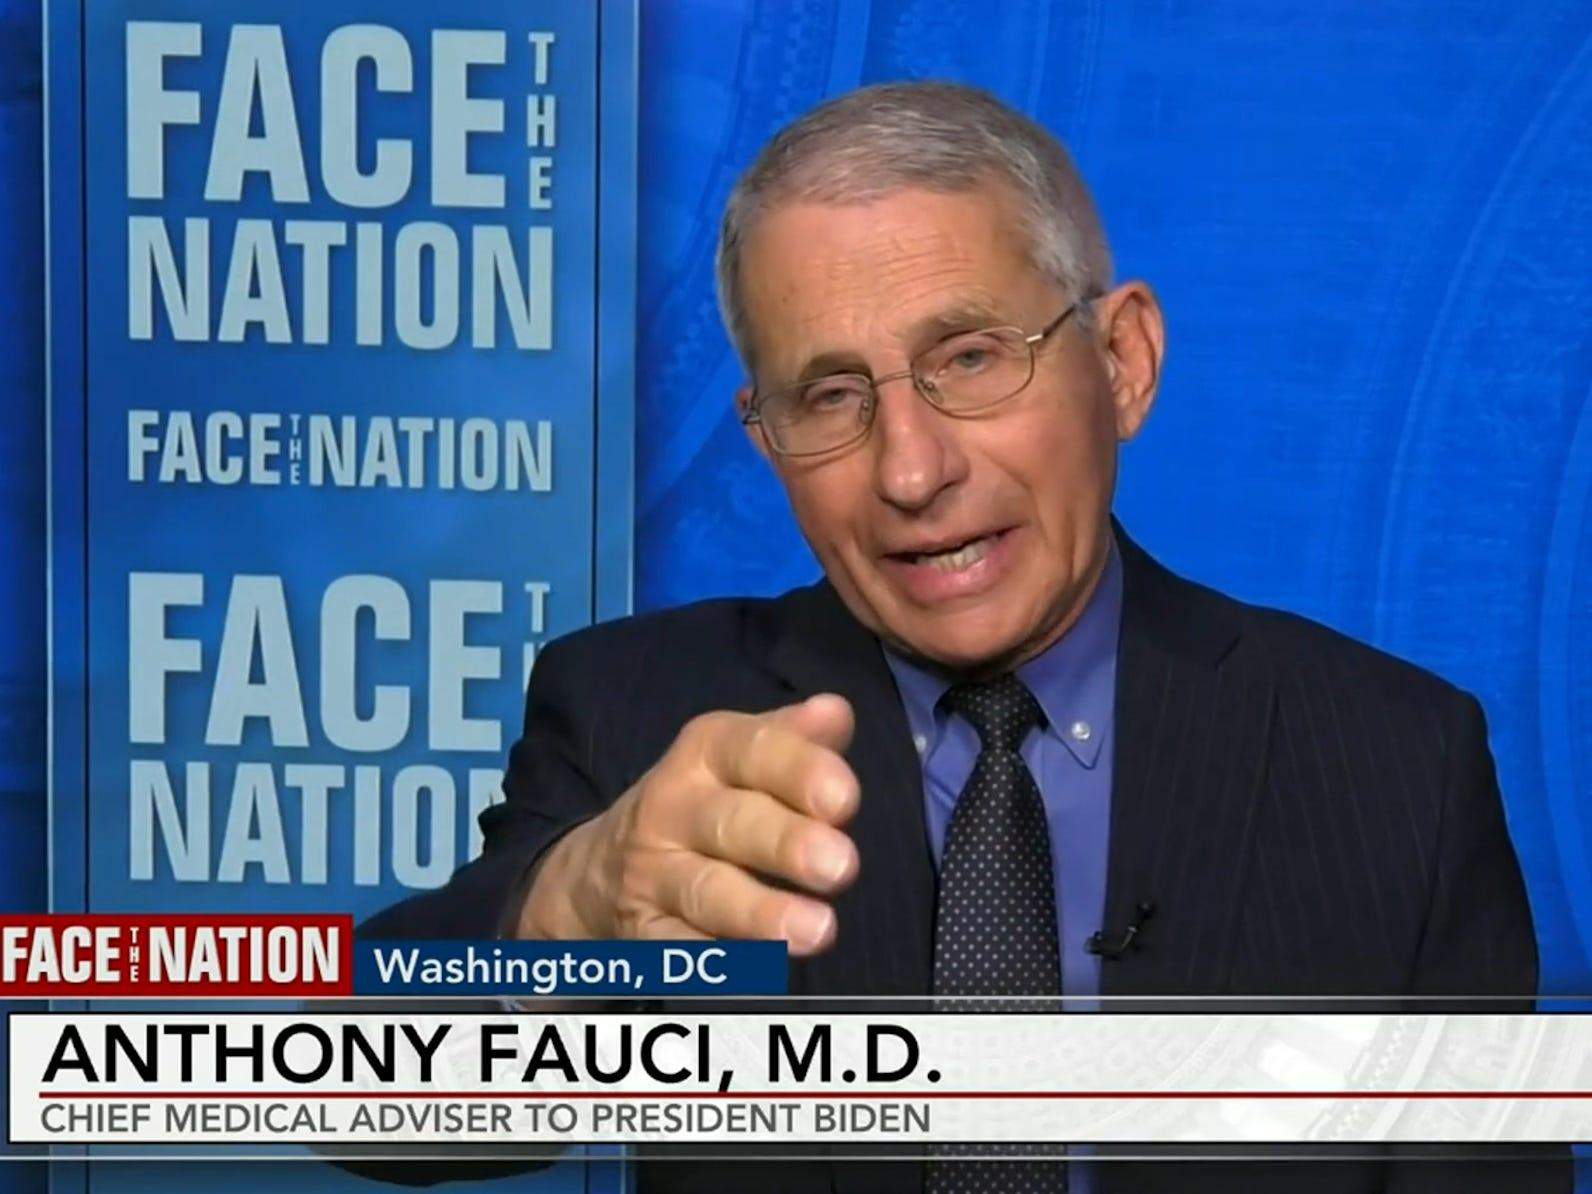 Fauci says the plateau of COVID-19 cases in the US is unacceptable and warns against an 'on and off' reopening strategy - Yahoo News